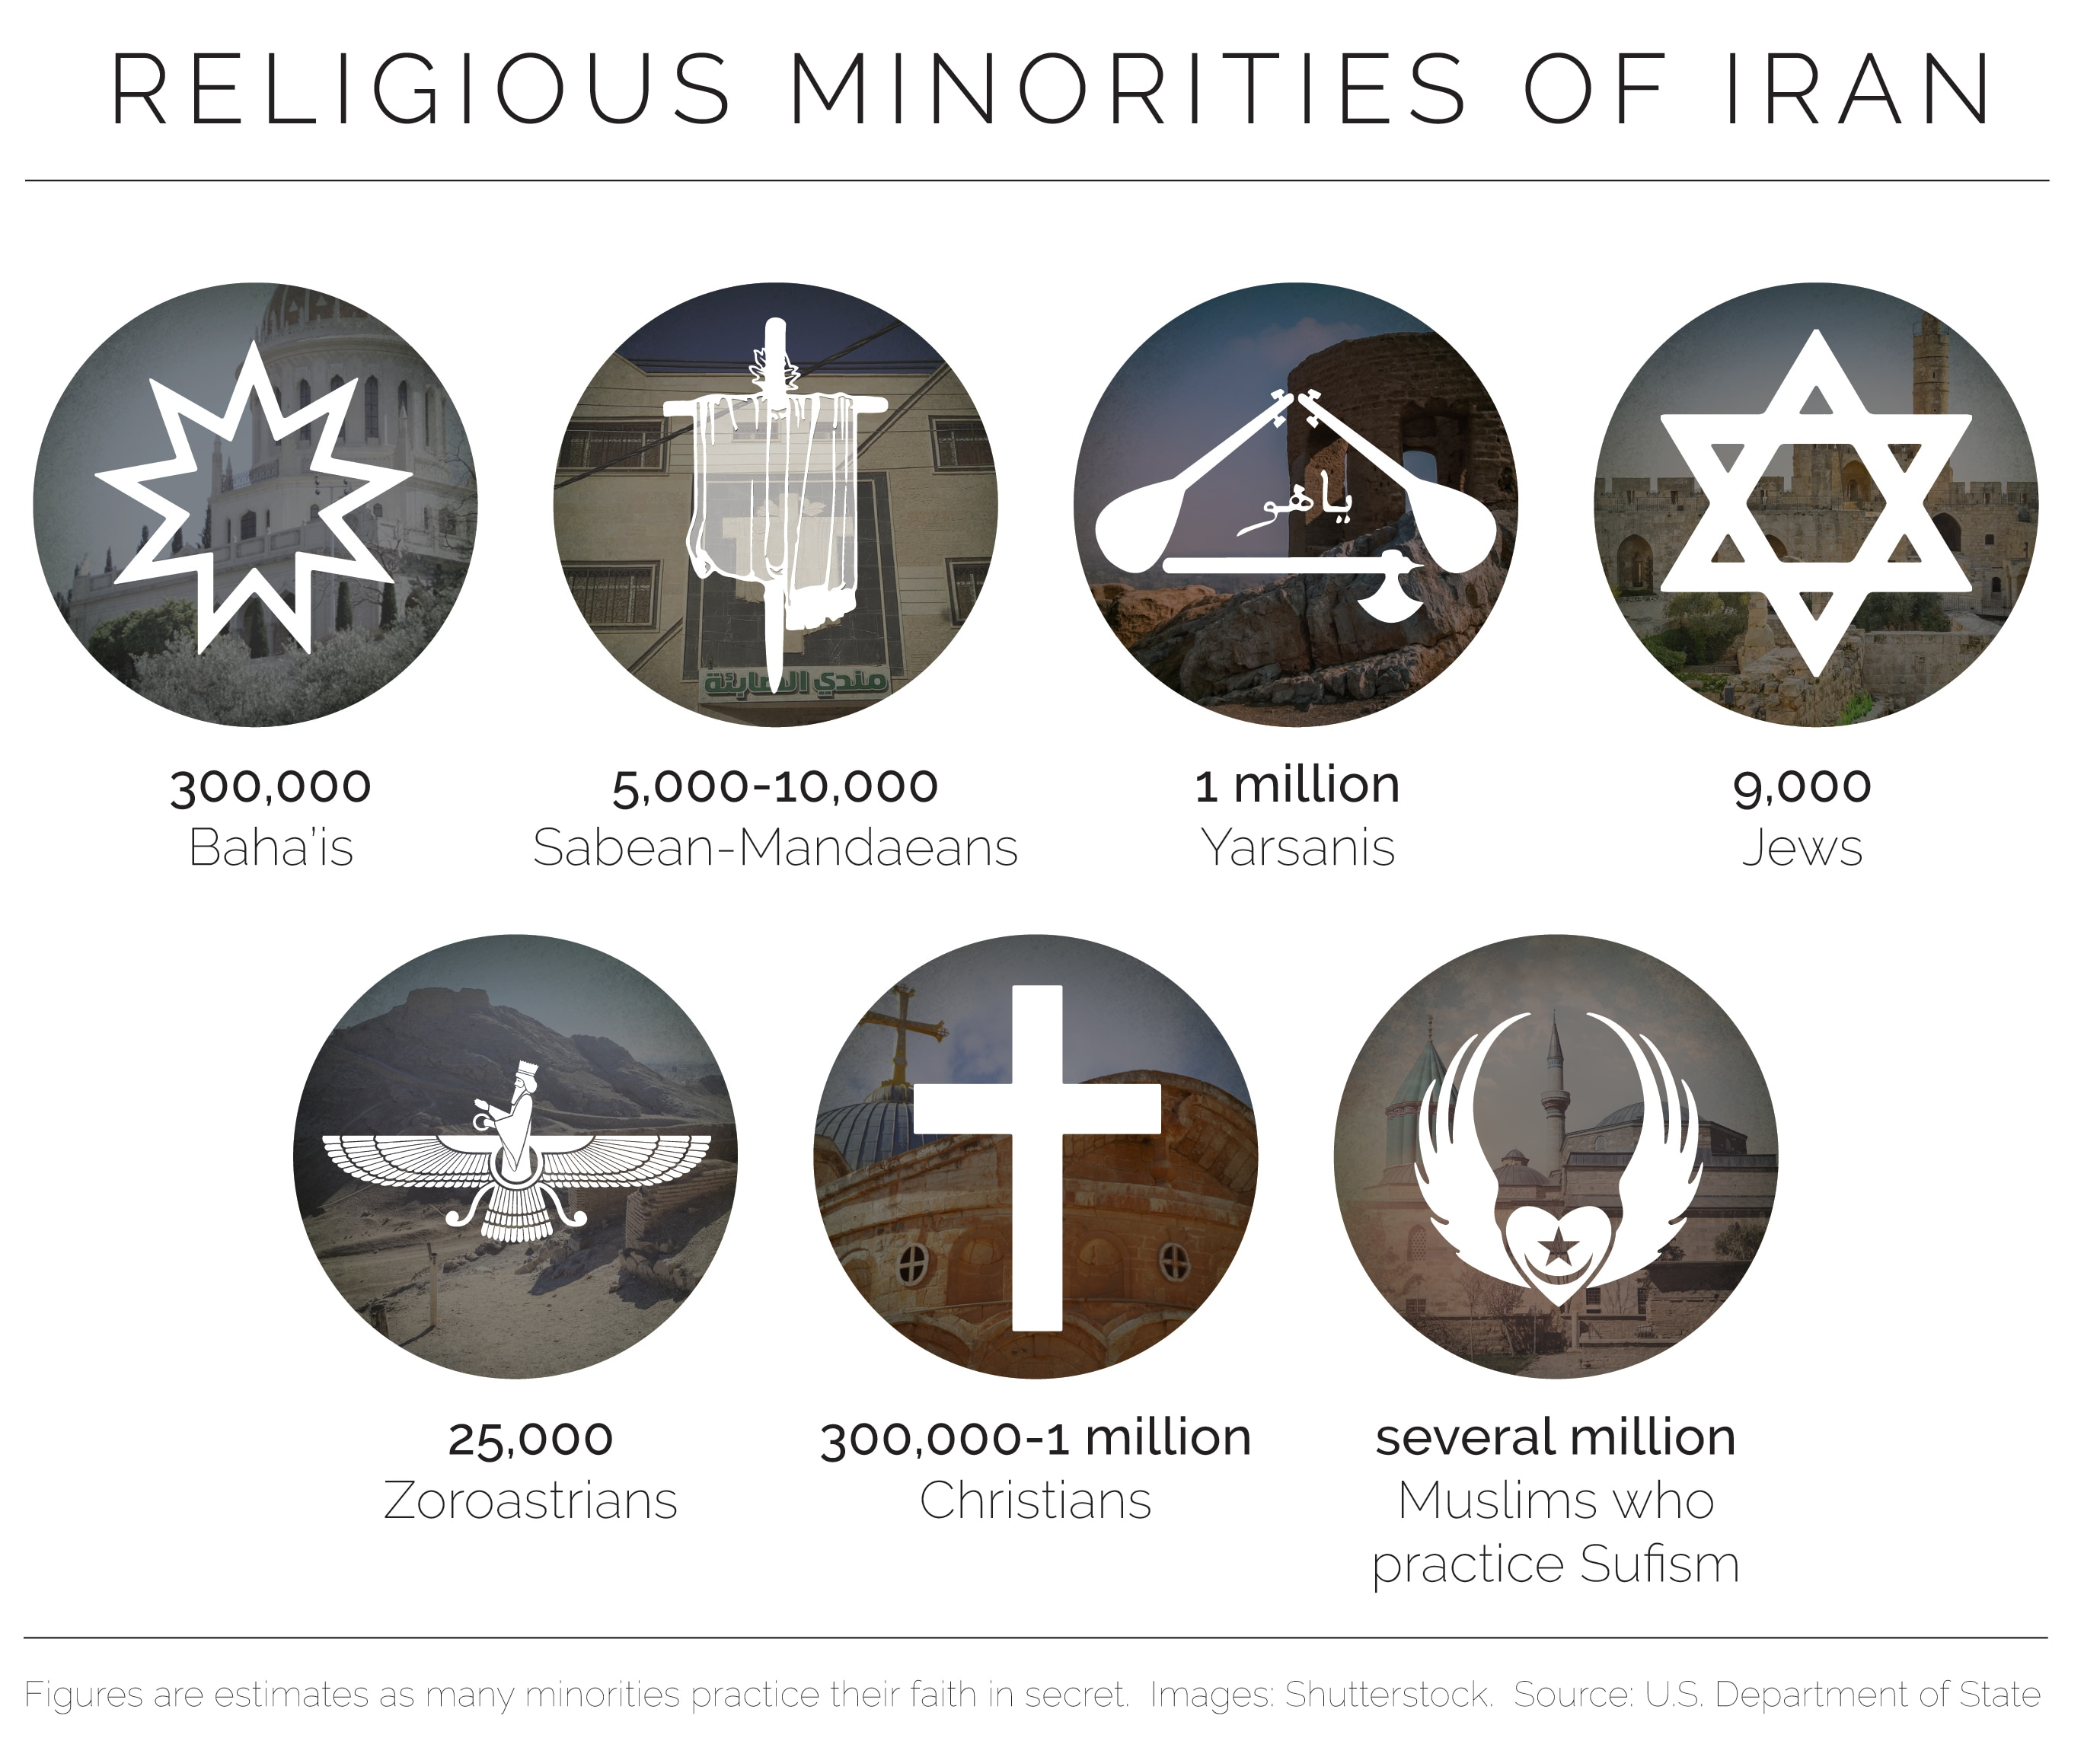 Graphic showing symbols of minority religions and estimated numbers of members in Iran (Shutterstock / State Dept.)